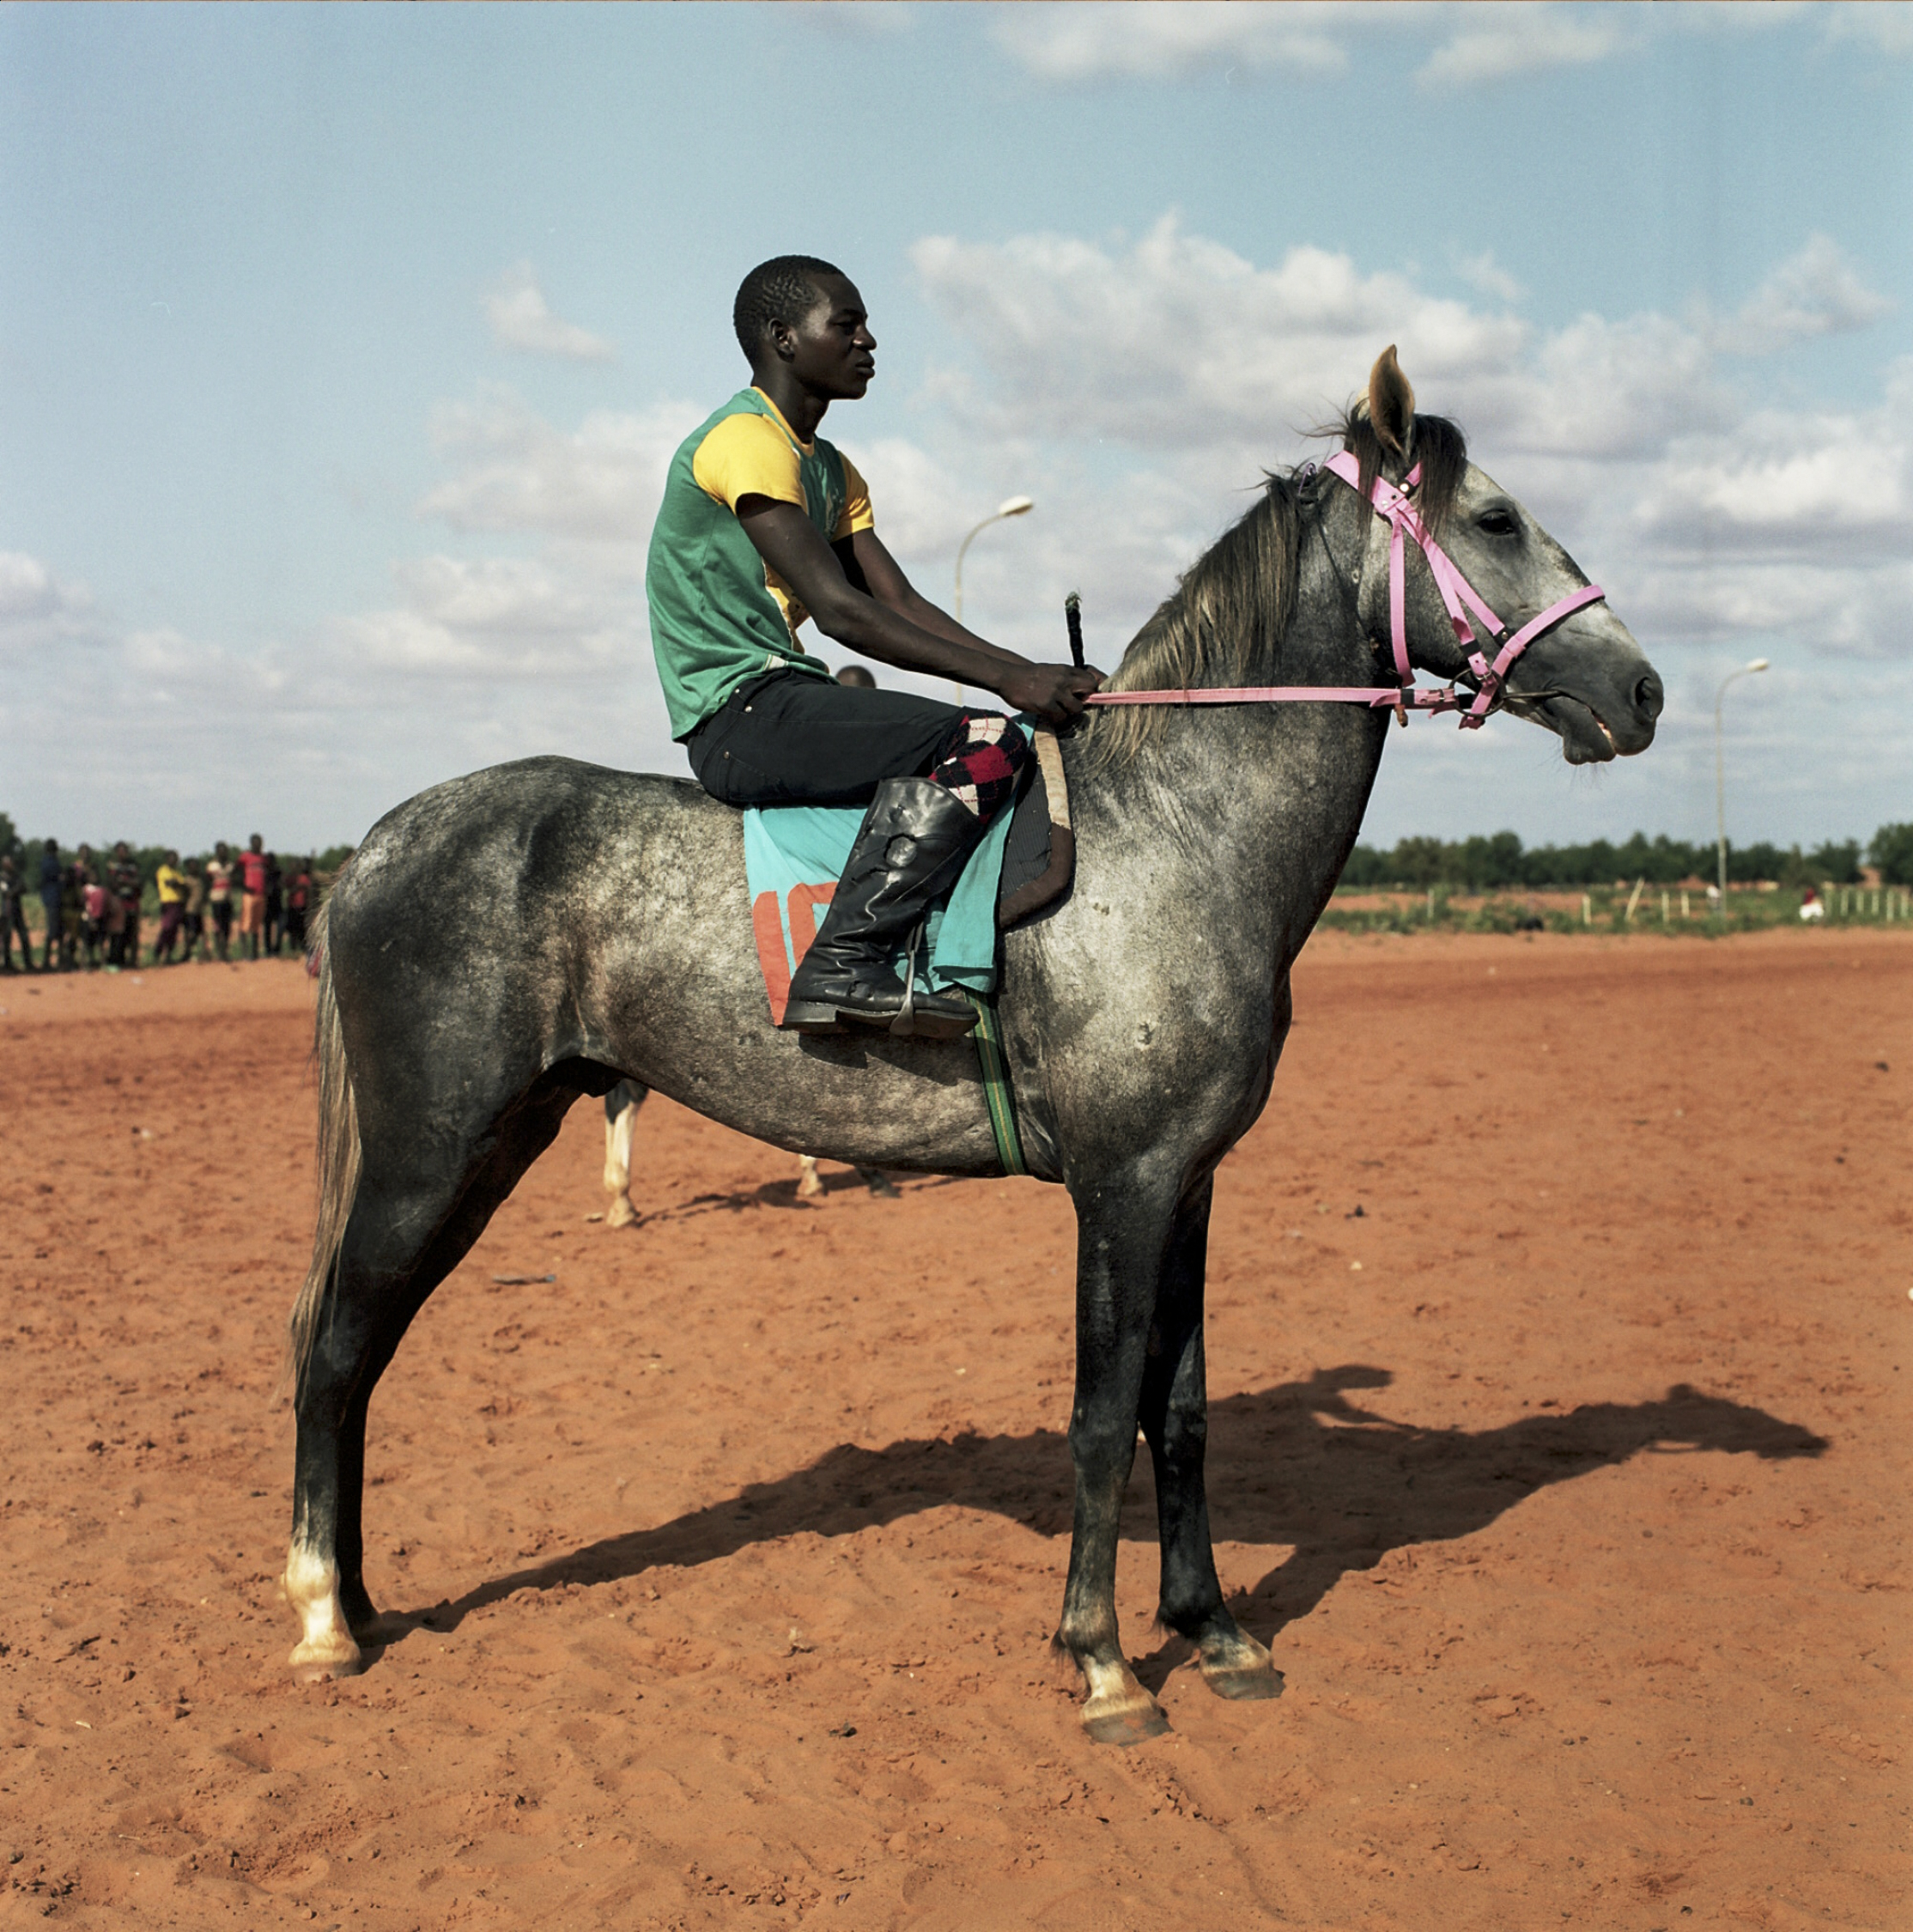 Zacharria rests on his horse, Welcome, before racing in Niamey.